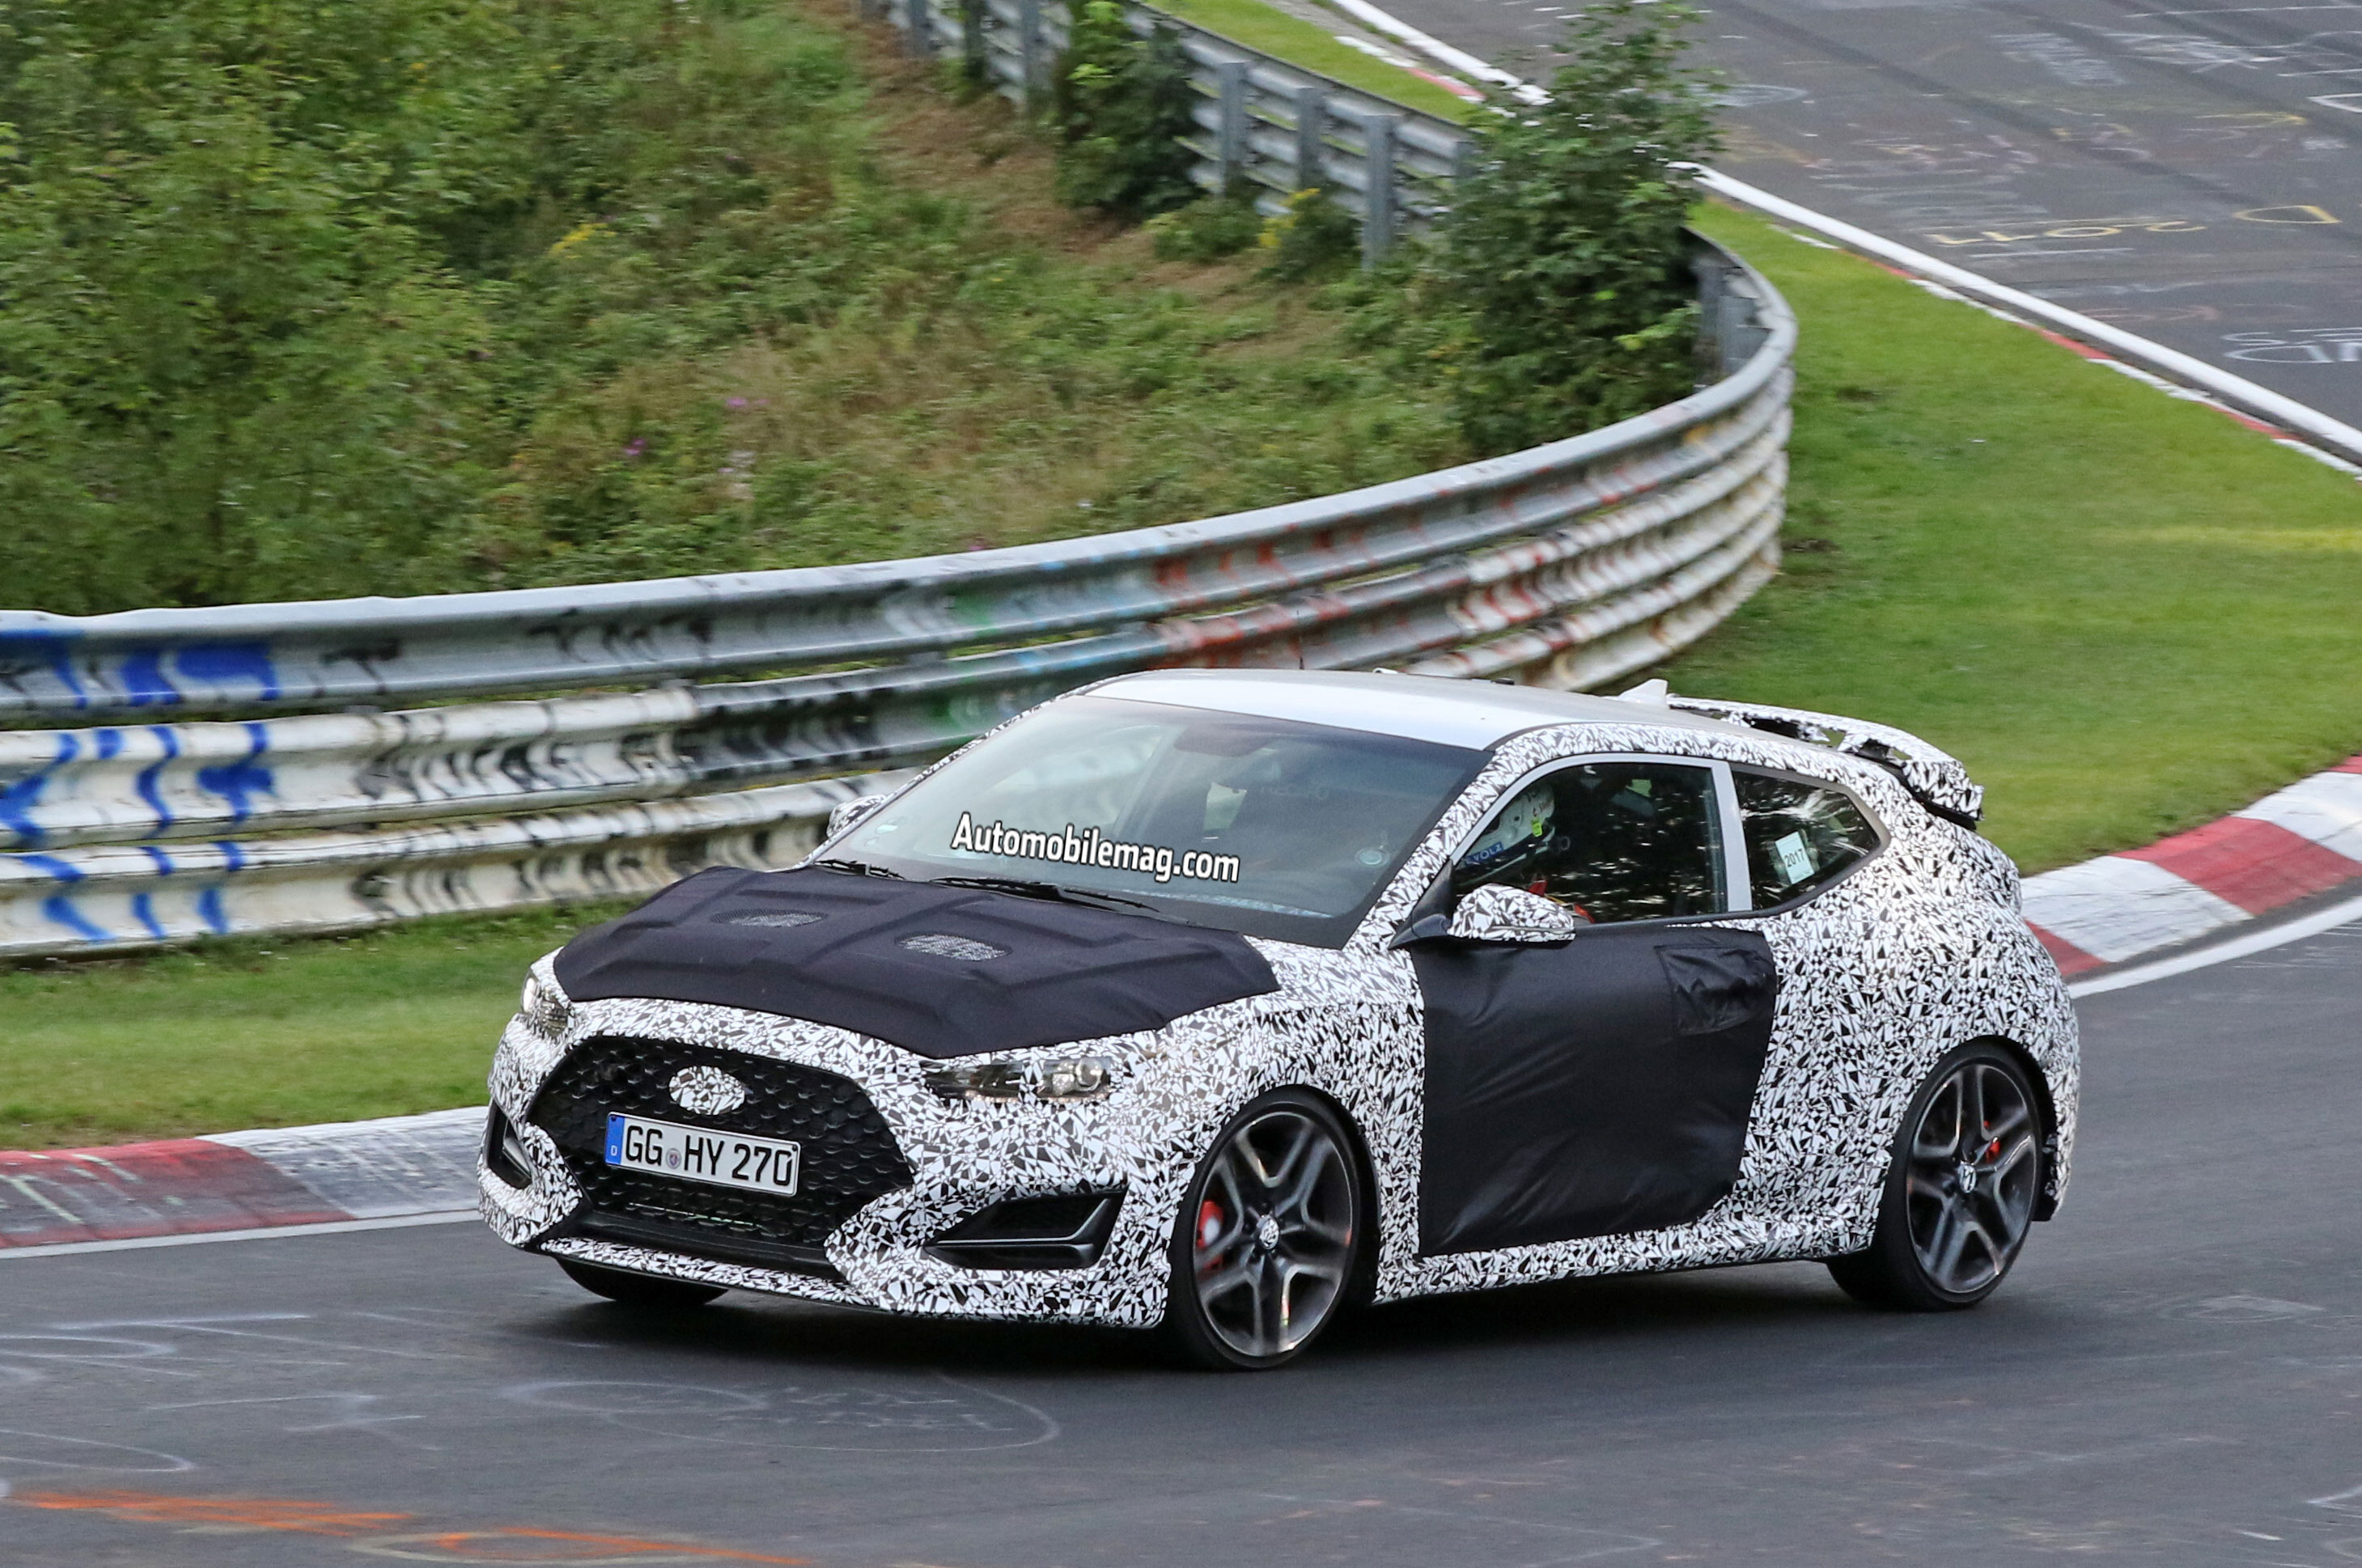 Hyundai Veloster N Sheds Camo At The Ring Auto Breaking News Turbo Intercooler